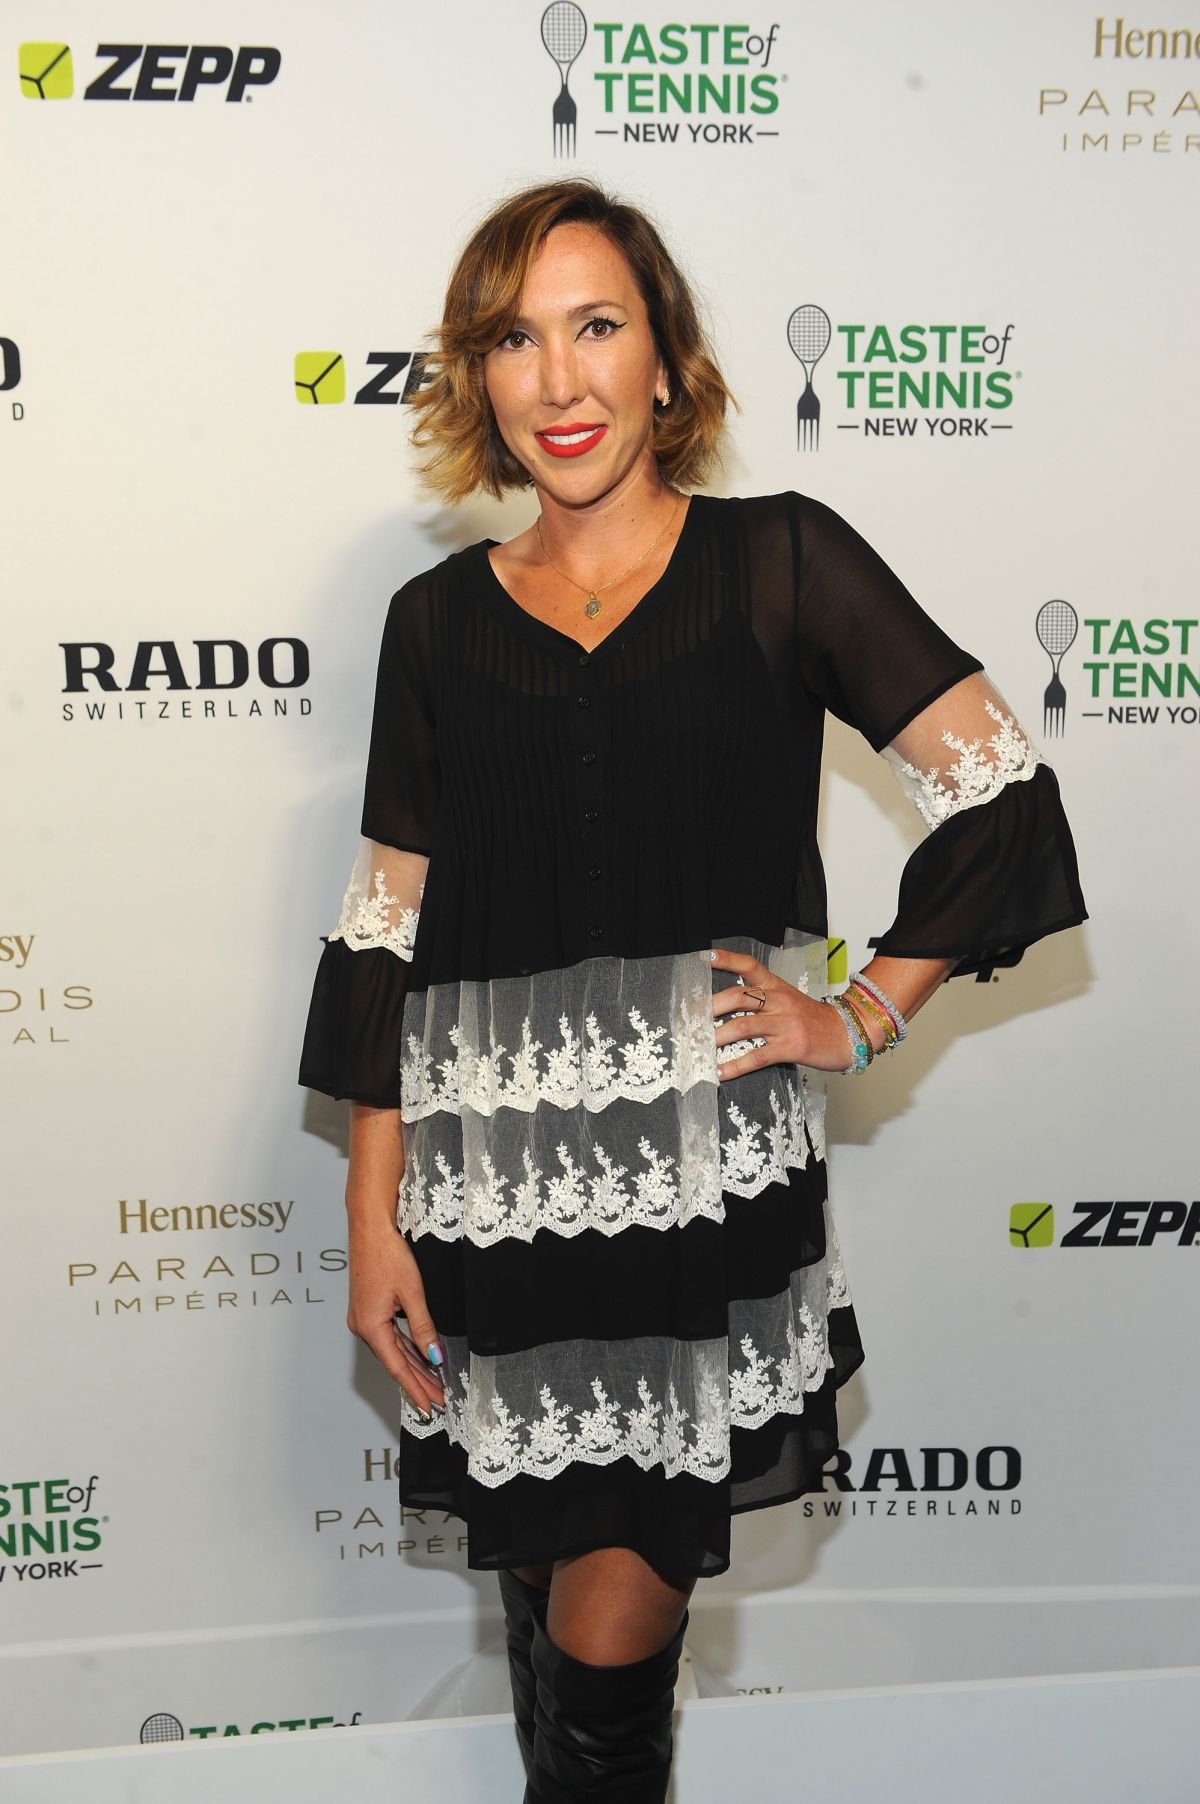 JELENA JANKOVIC at Taste of Tennis Gala in New York